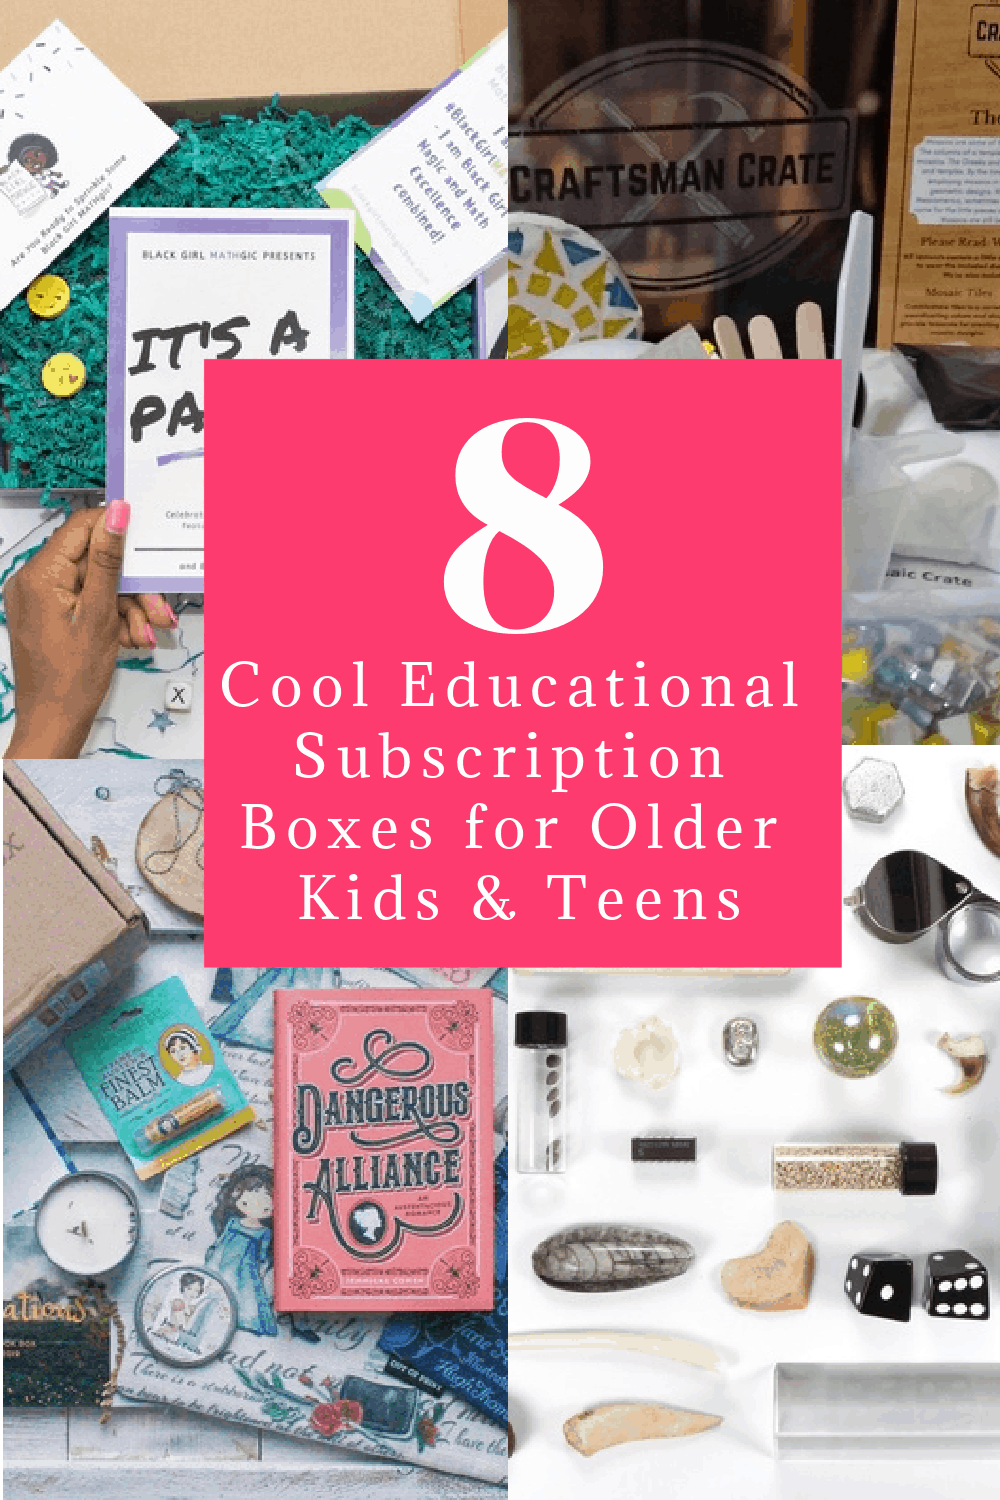 Looking for some amazing educational subscription boxes for older kids (including teenagers)? Here are 8  that make fantastic supplements to middle school and high school lessons. Check them out!